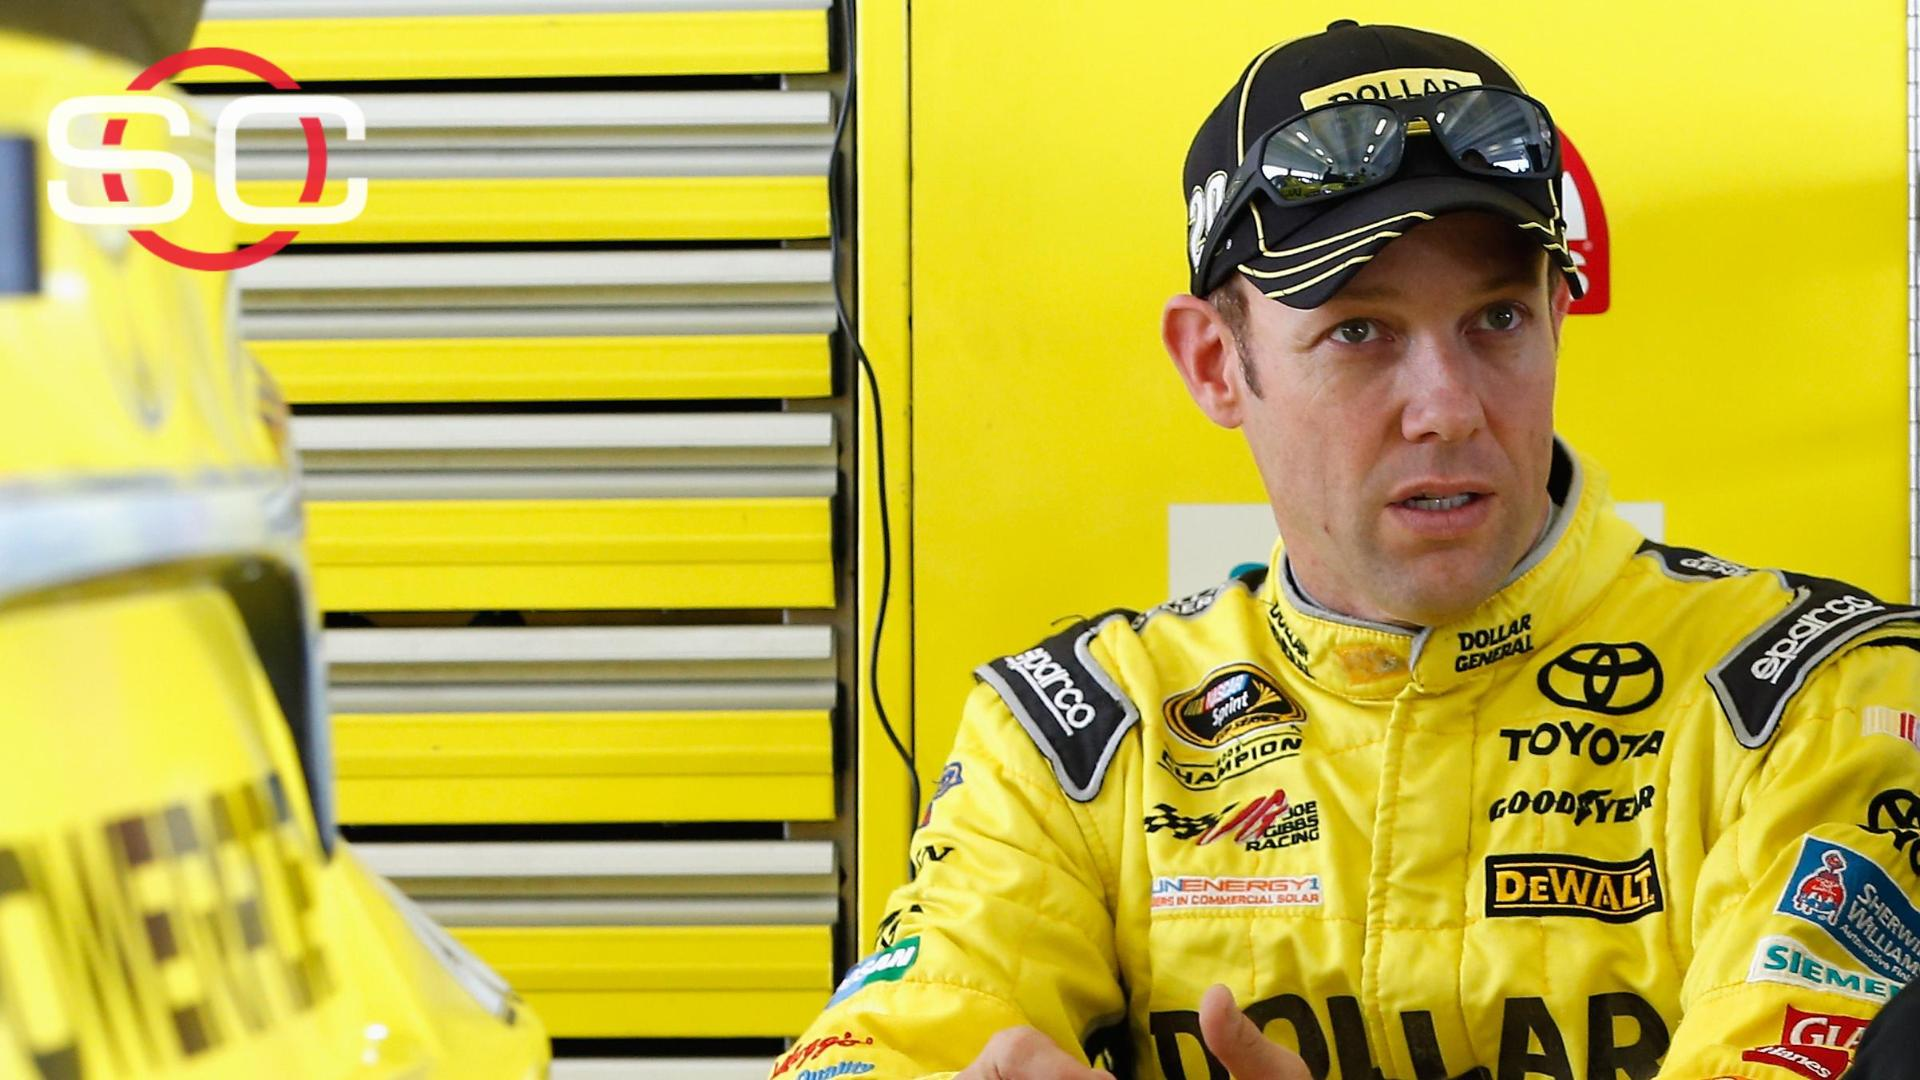 http://a.espncdn.com/media/motion/2015/1120/dm_151120_kenseth_headline1306/dm_151120_kenseth_headline1306.jpg